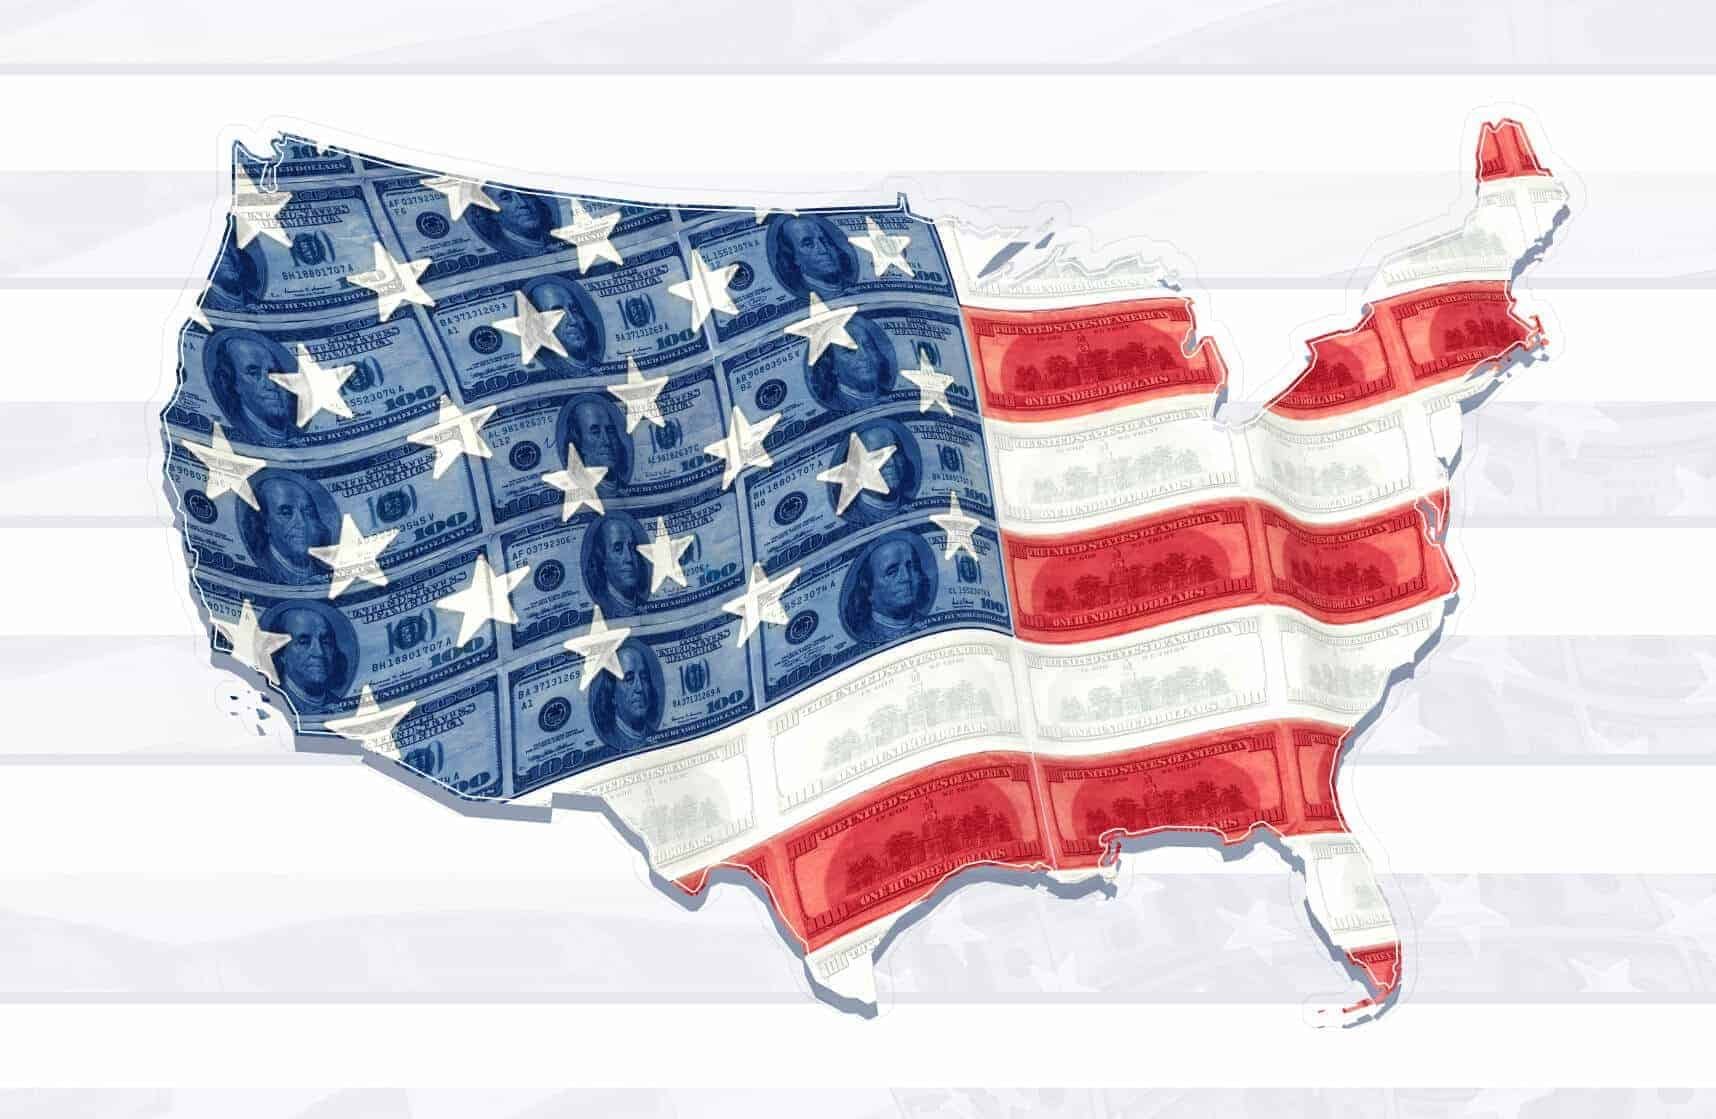 The United States flag and electoral map are made of money (illustrated)